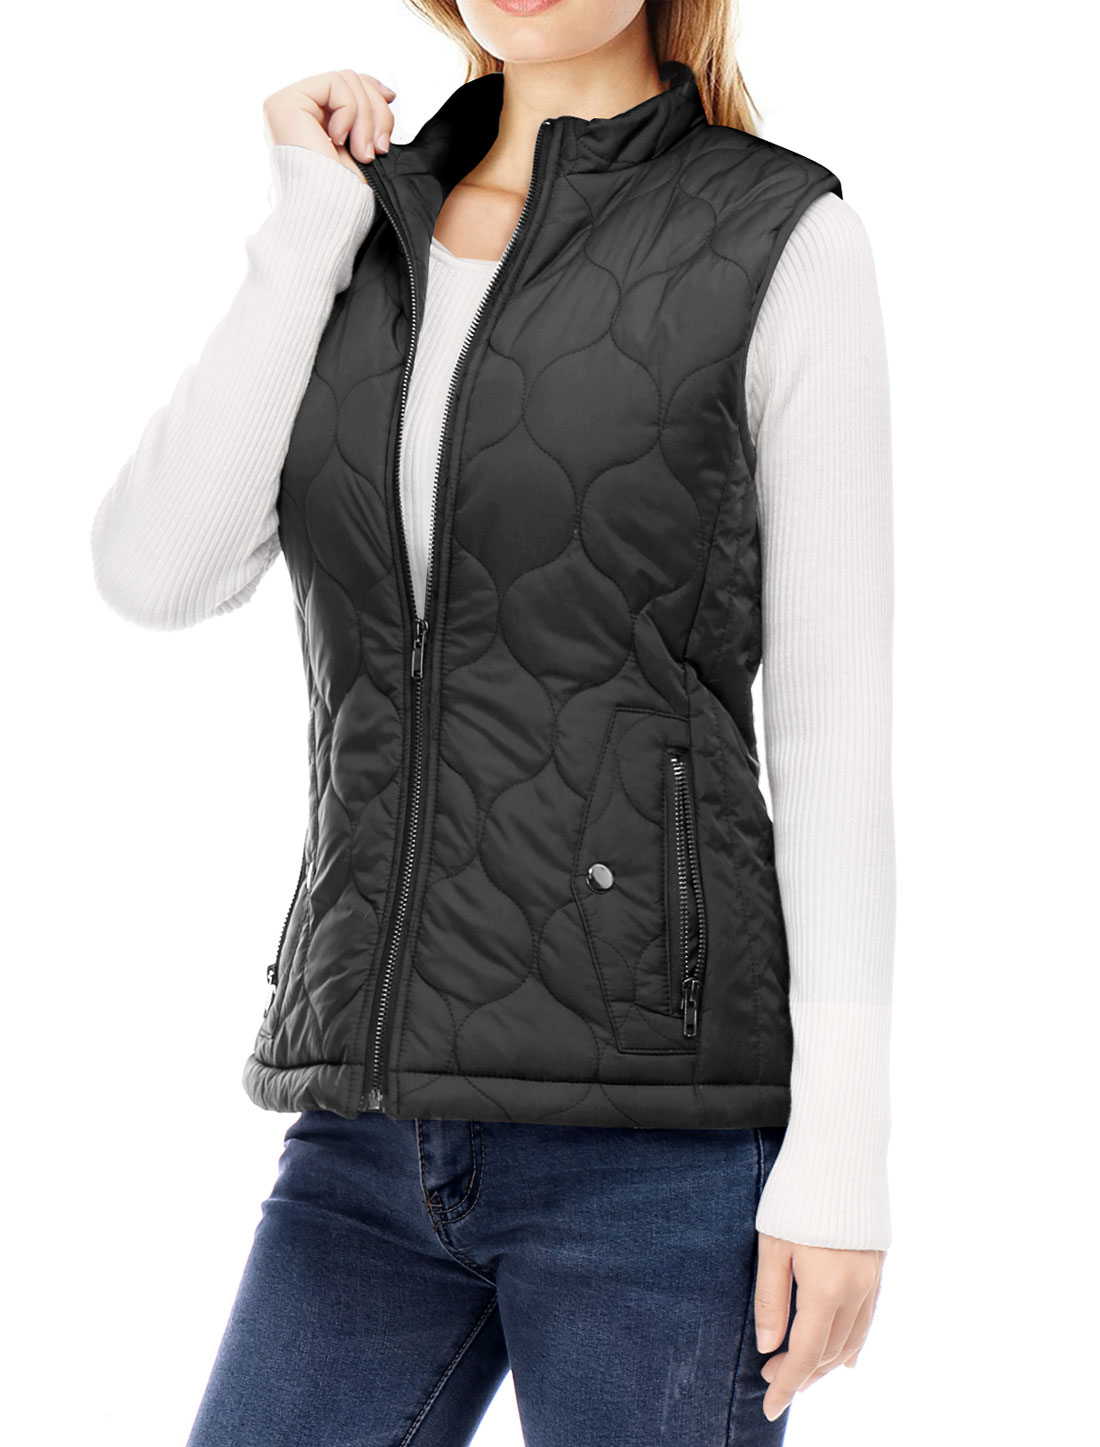 Women Stand Collar Side Pockets Zippered Quilted Padded Vest Black XL